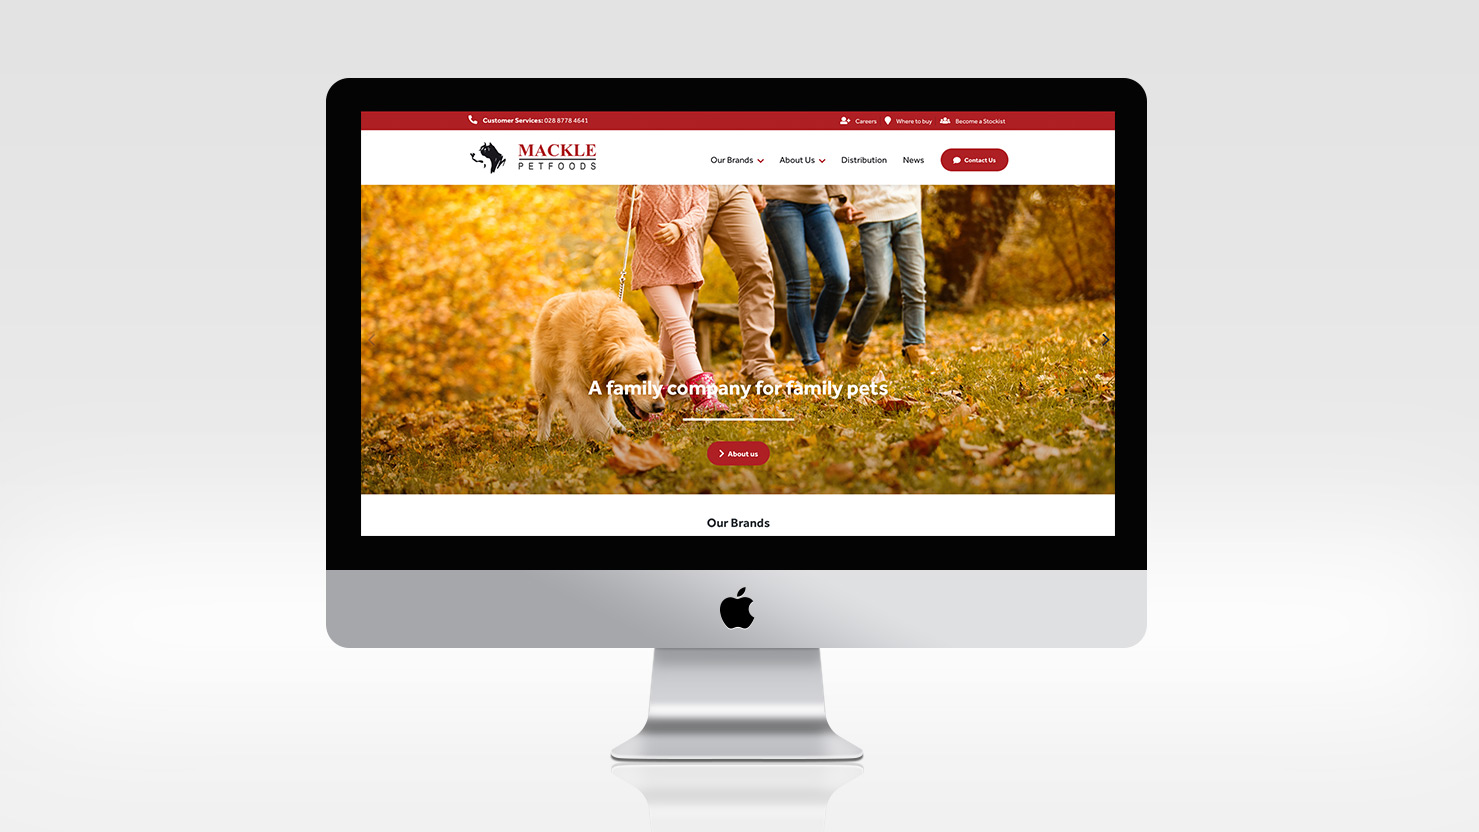 Mackle Pet Foods Homepage by LD2